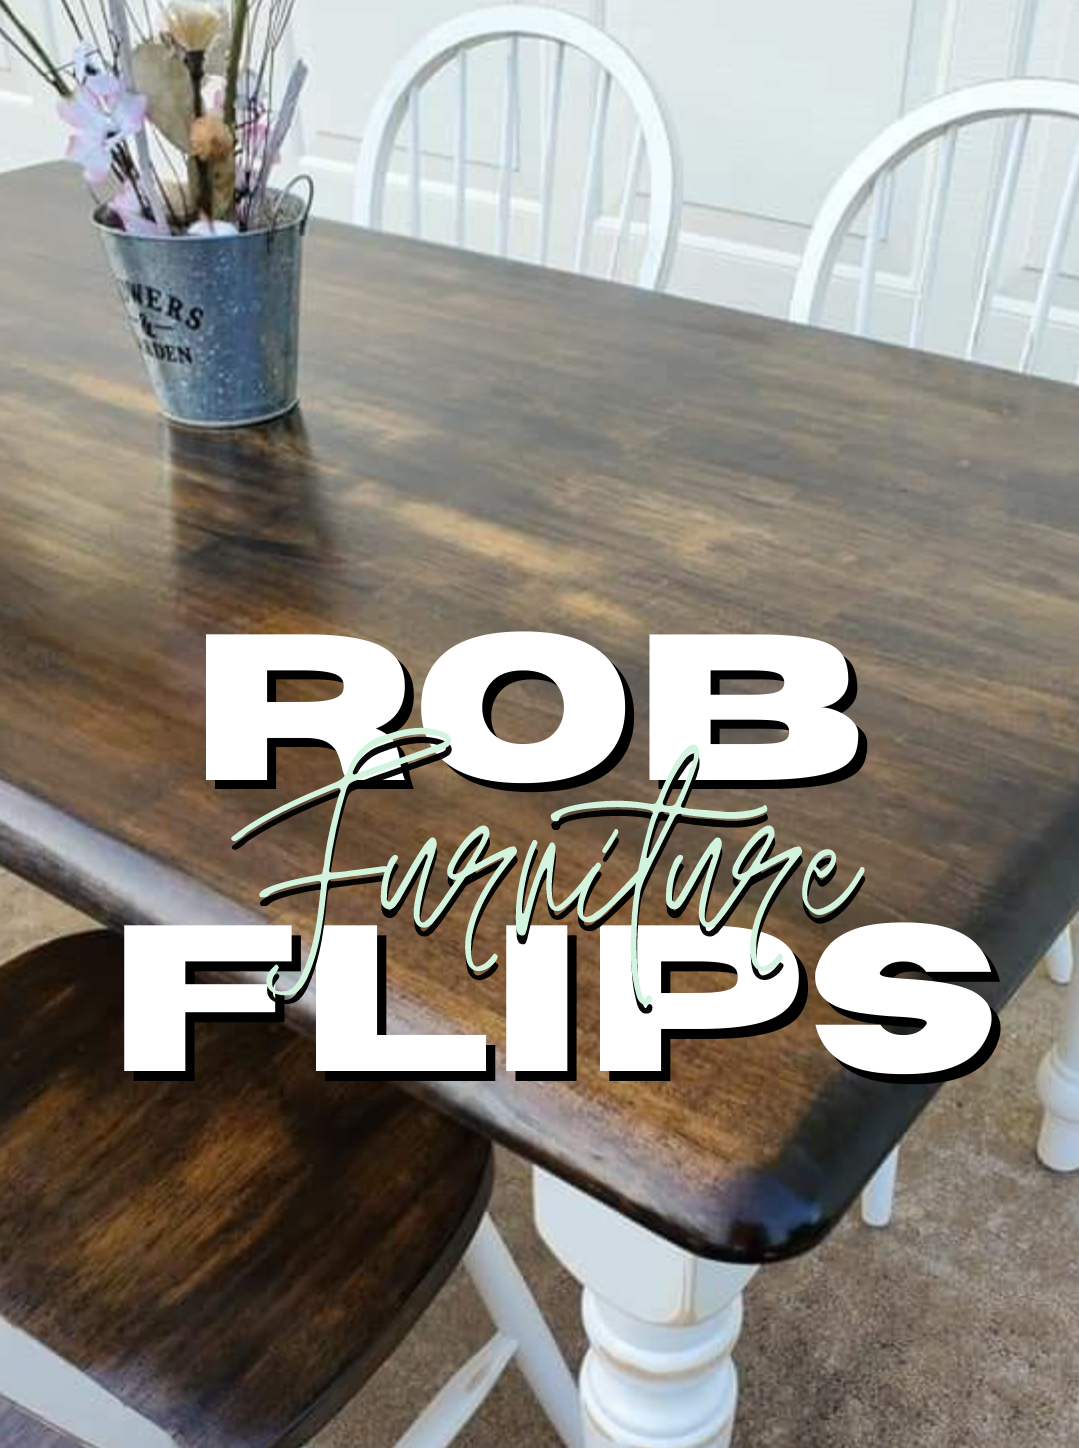 Restored Table with dark stain surface and white legs in the background. Rob Flips Furniture in text in the foreground